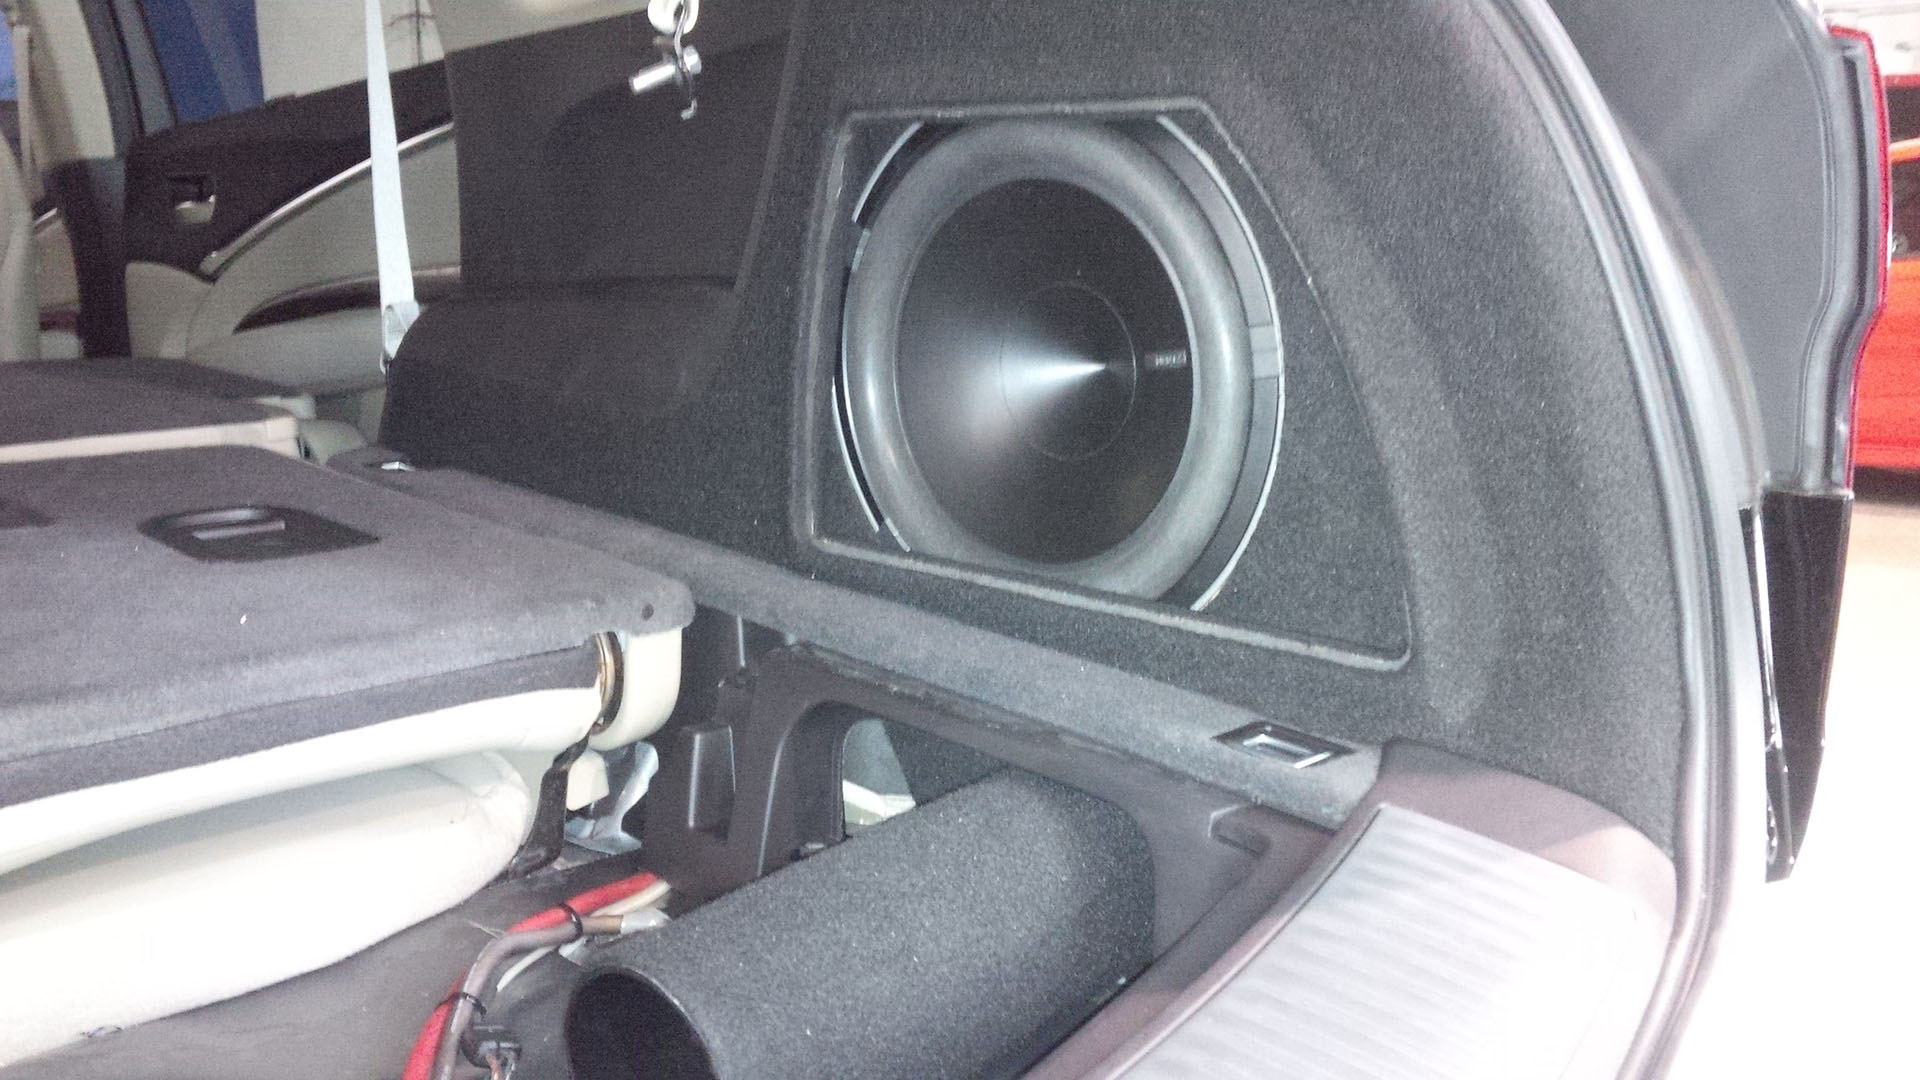 Acura Mdx 2014 >> Acura Mdx Subwoofer Pictures to Pin on Pinterest - PinsDaddy